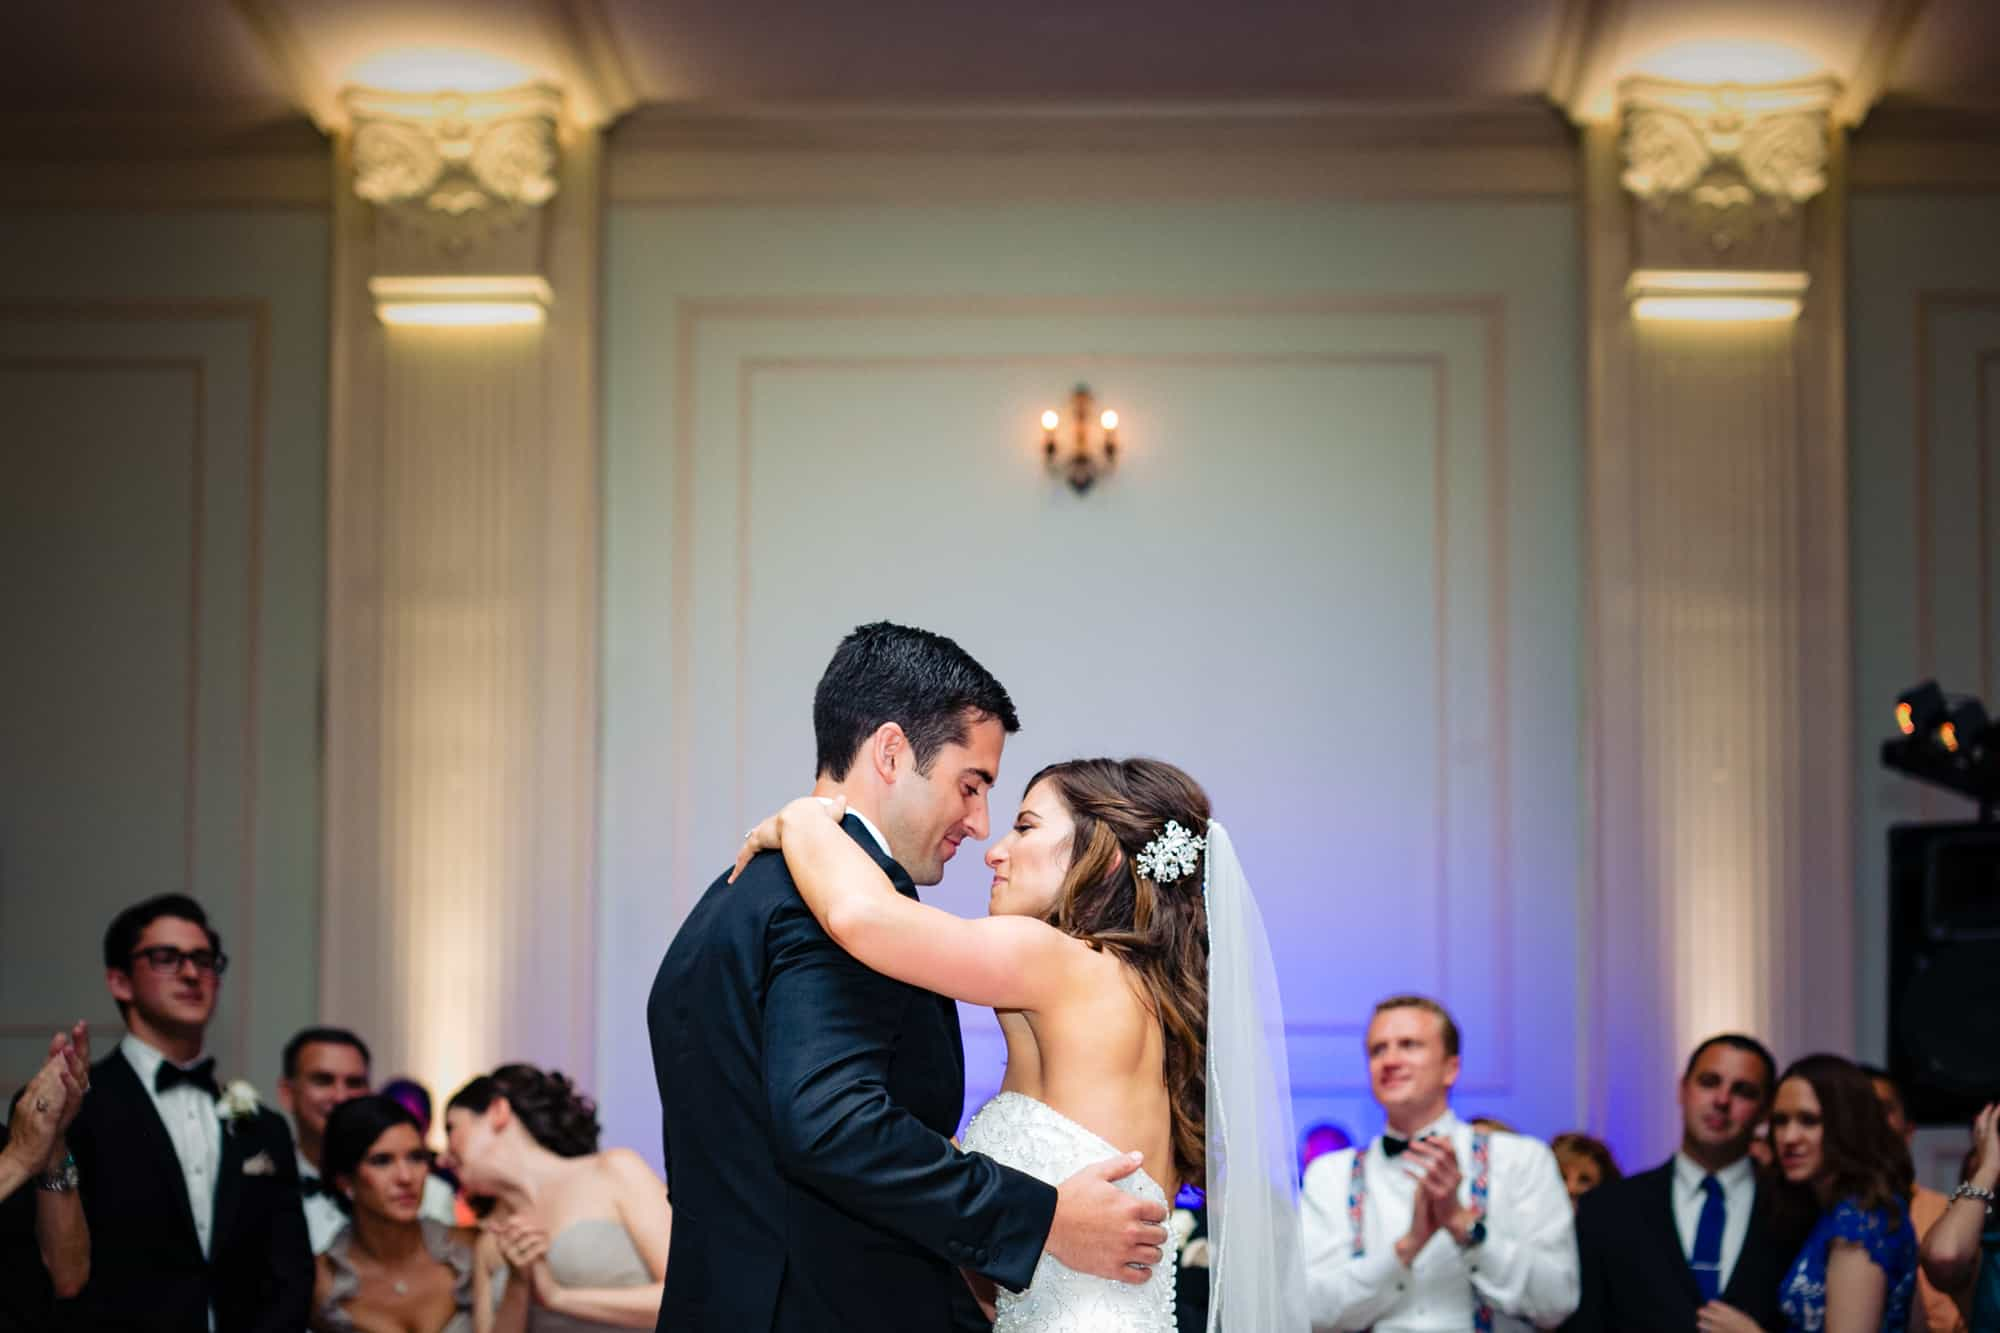 Bride and groom first dance at Cescaphe Ballroom